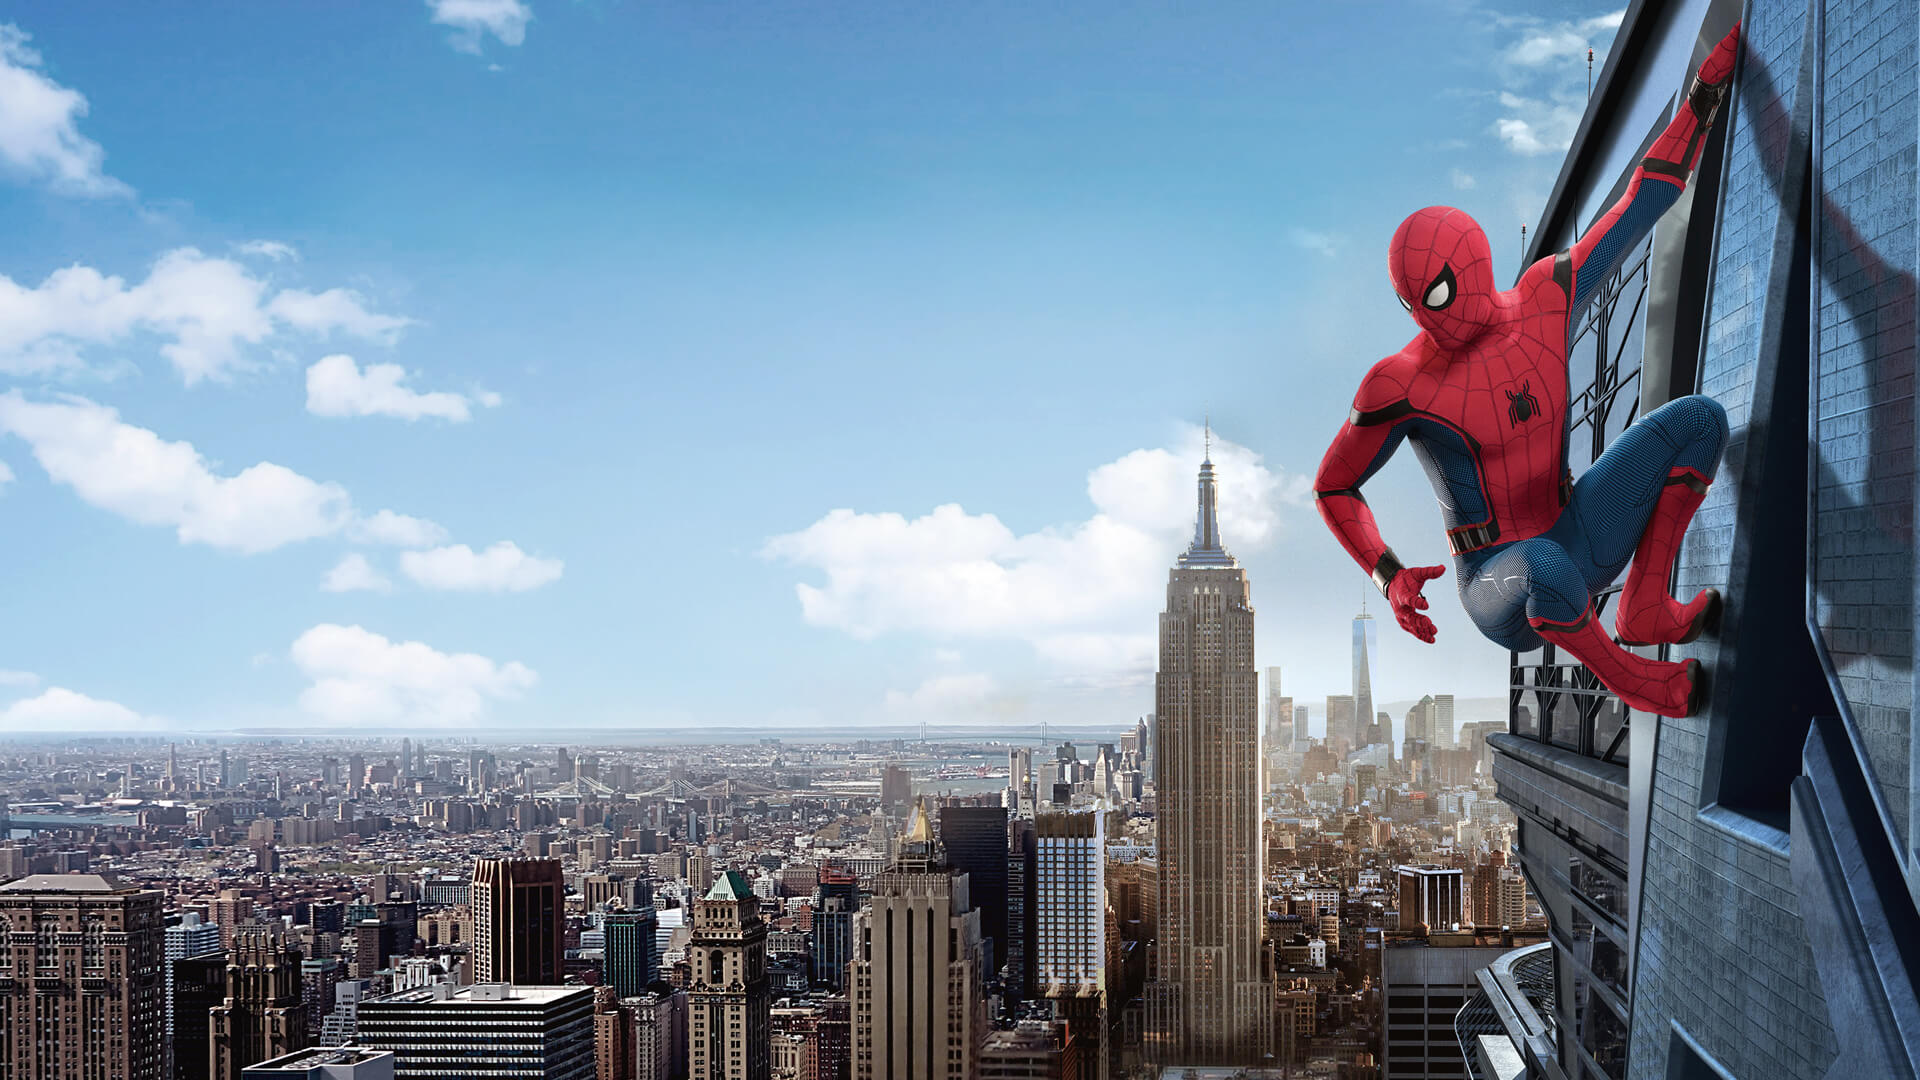 WALLPAPER] Fan Manipulated Spider Man Homecoming Promo 1920x1080 1920x1080